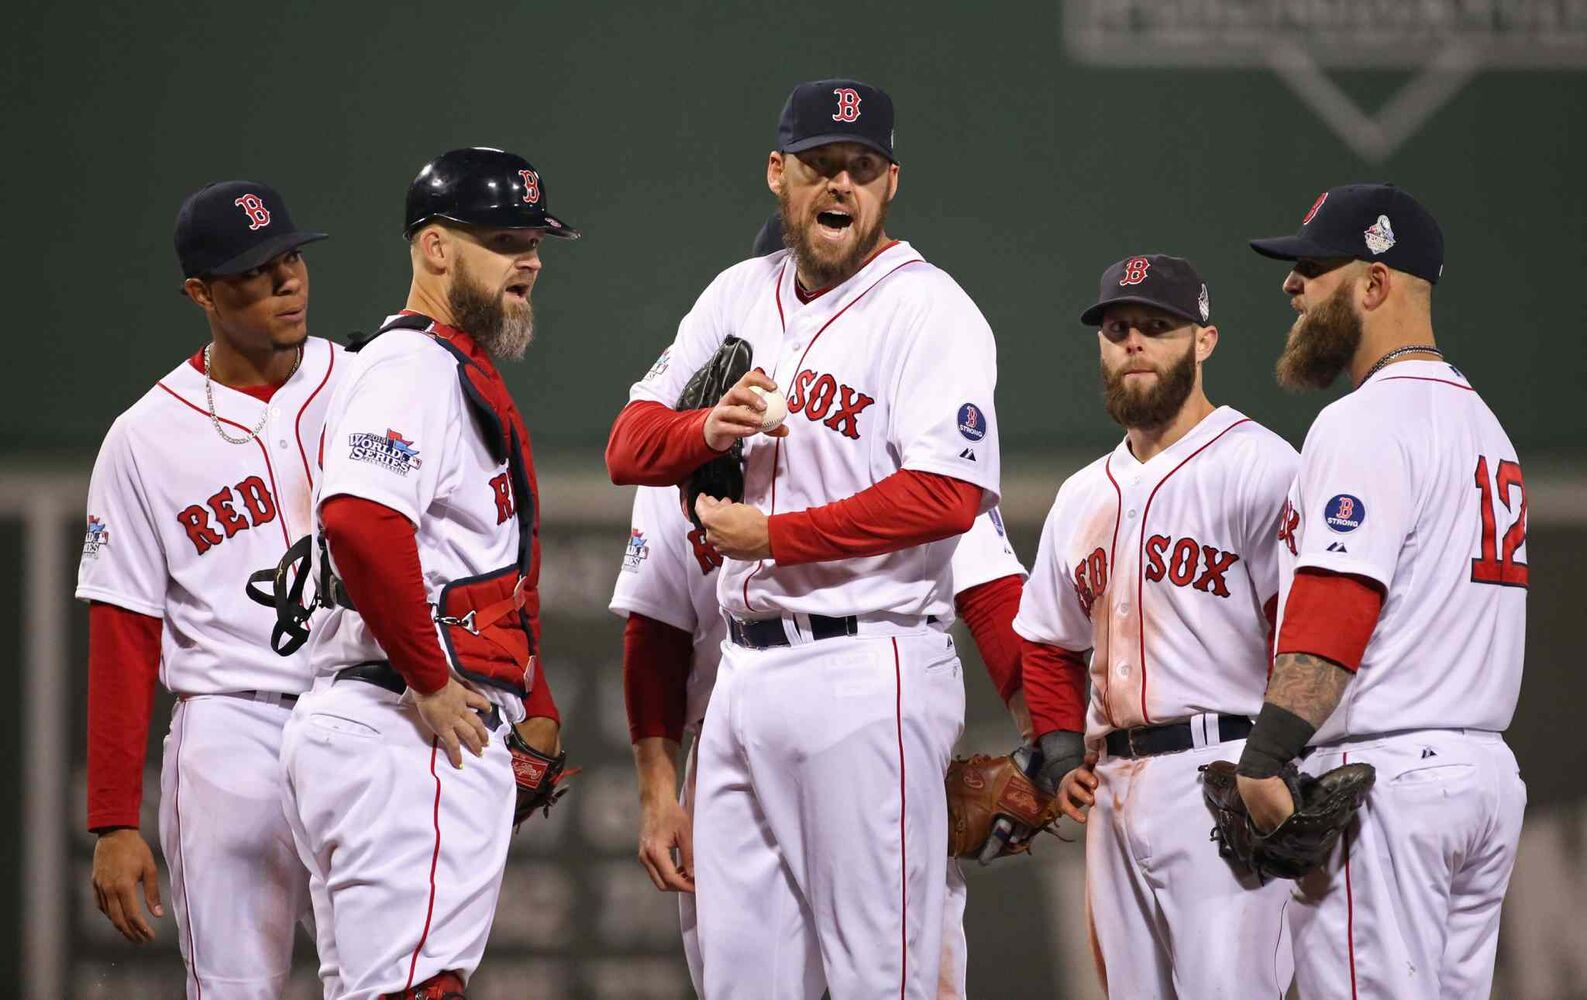 Boston Red Sox pitcher John Lackey yells to manager John Farrell to stay in the game to face Matt Holliday in the seventh inning. (Chris Lee / St. Louis Post-Dispatch / MCT)